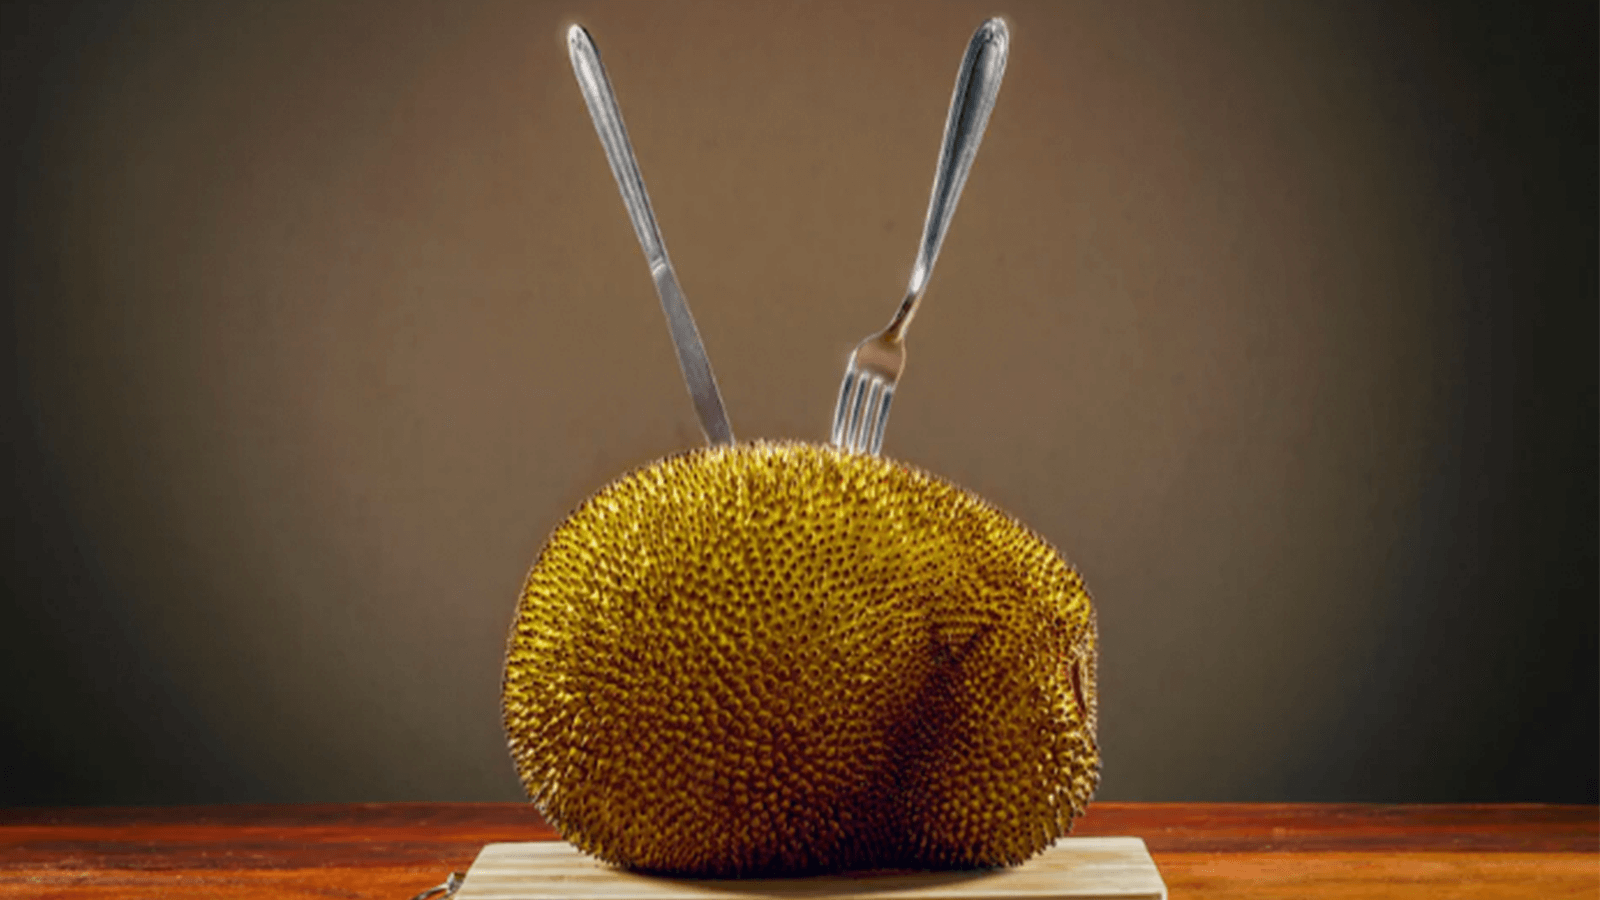 The flesh of this spiny fruit is often used as a meat substitute CREDIT: KTSDESIGN/SCIENCE PHOTO LIBRARY